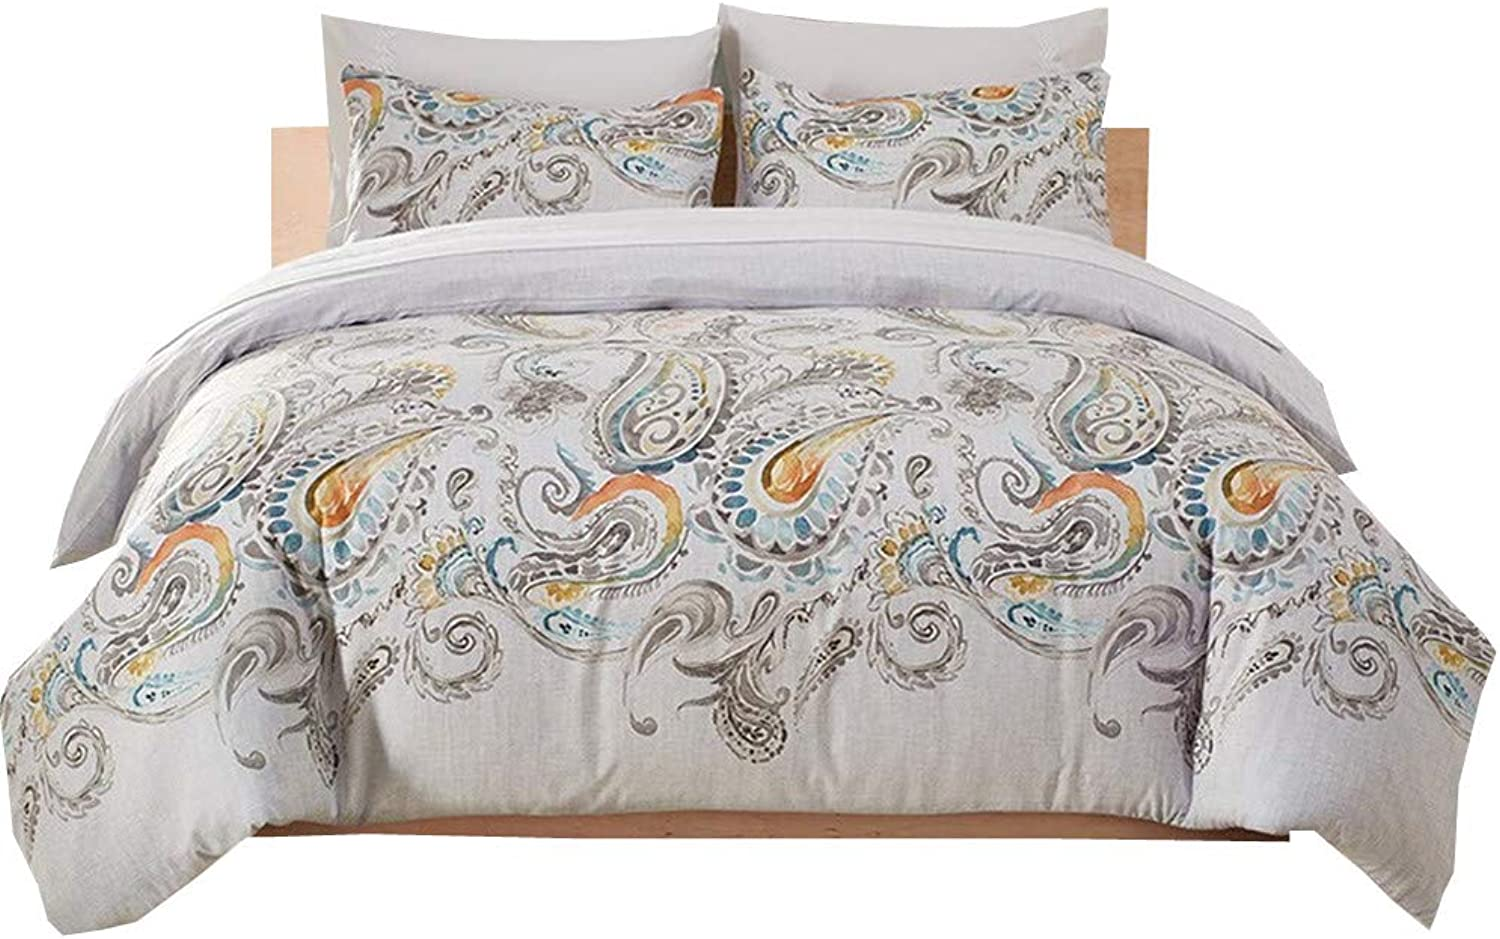 YIH Paisley Duvet Cover Twin White, Ultra Silky Soft Premium Bedding Collection